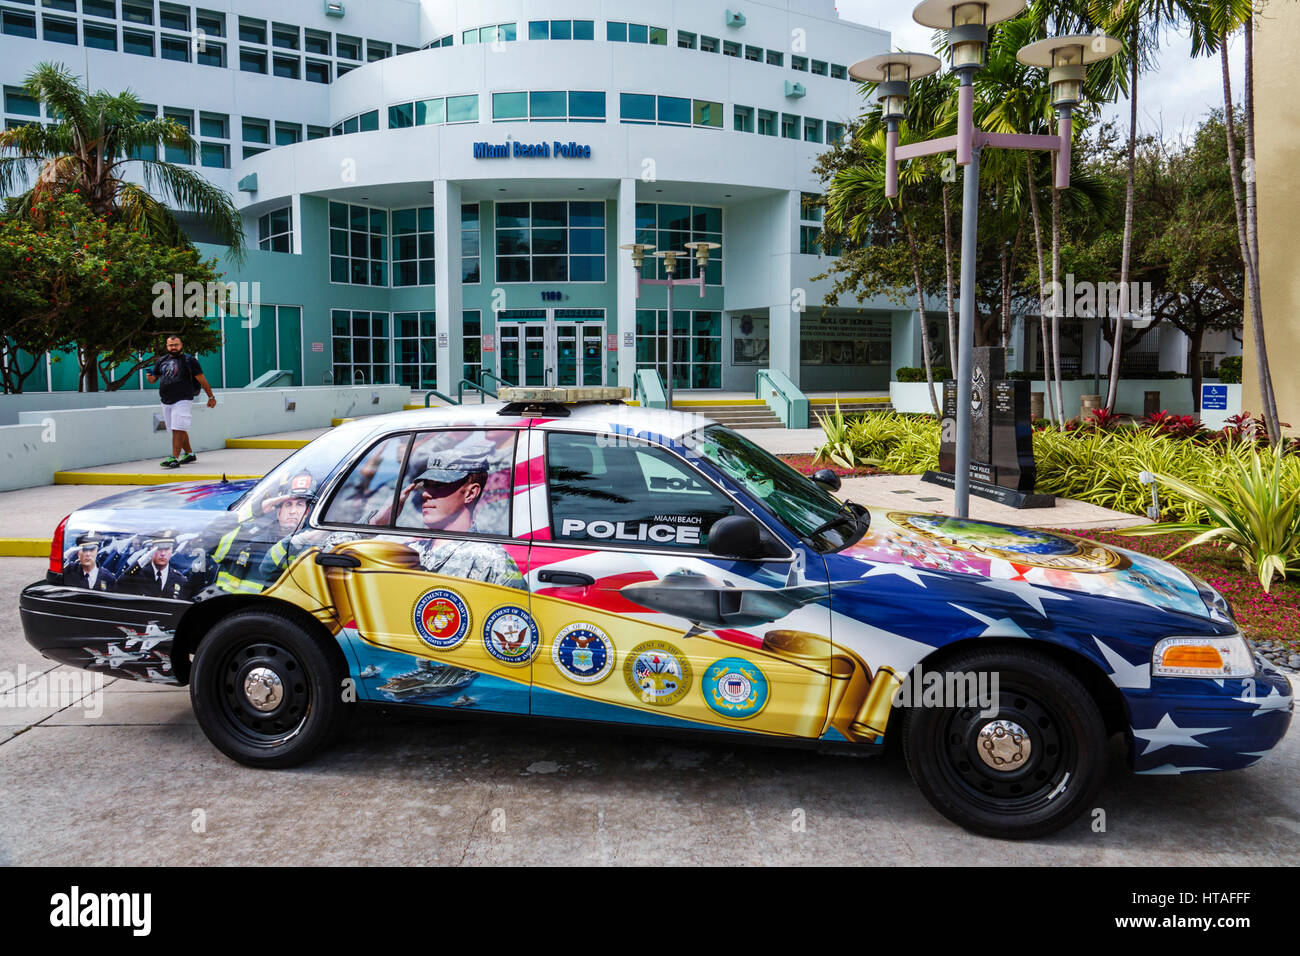 Department of motor vehicles miami florida vehicle ideas for The motor vehicle department